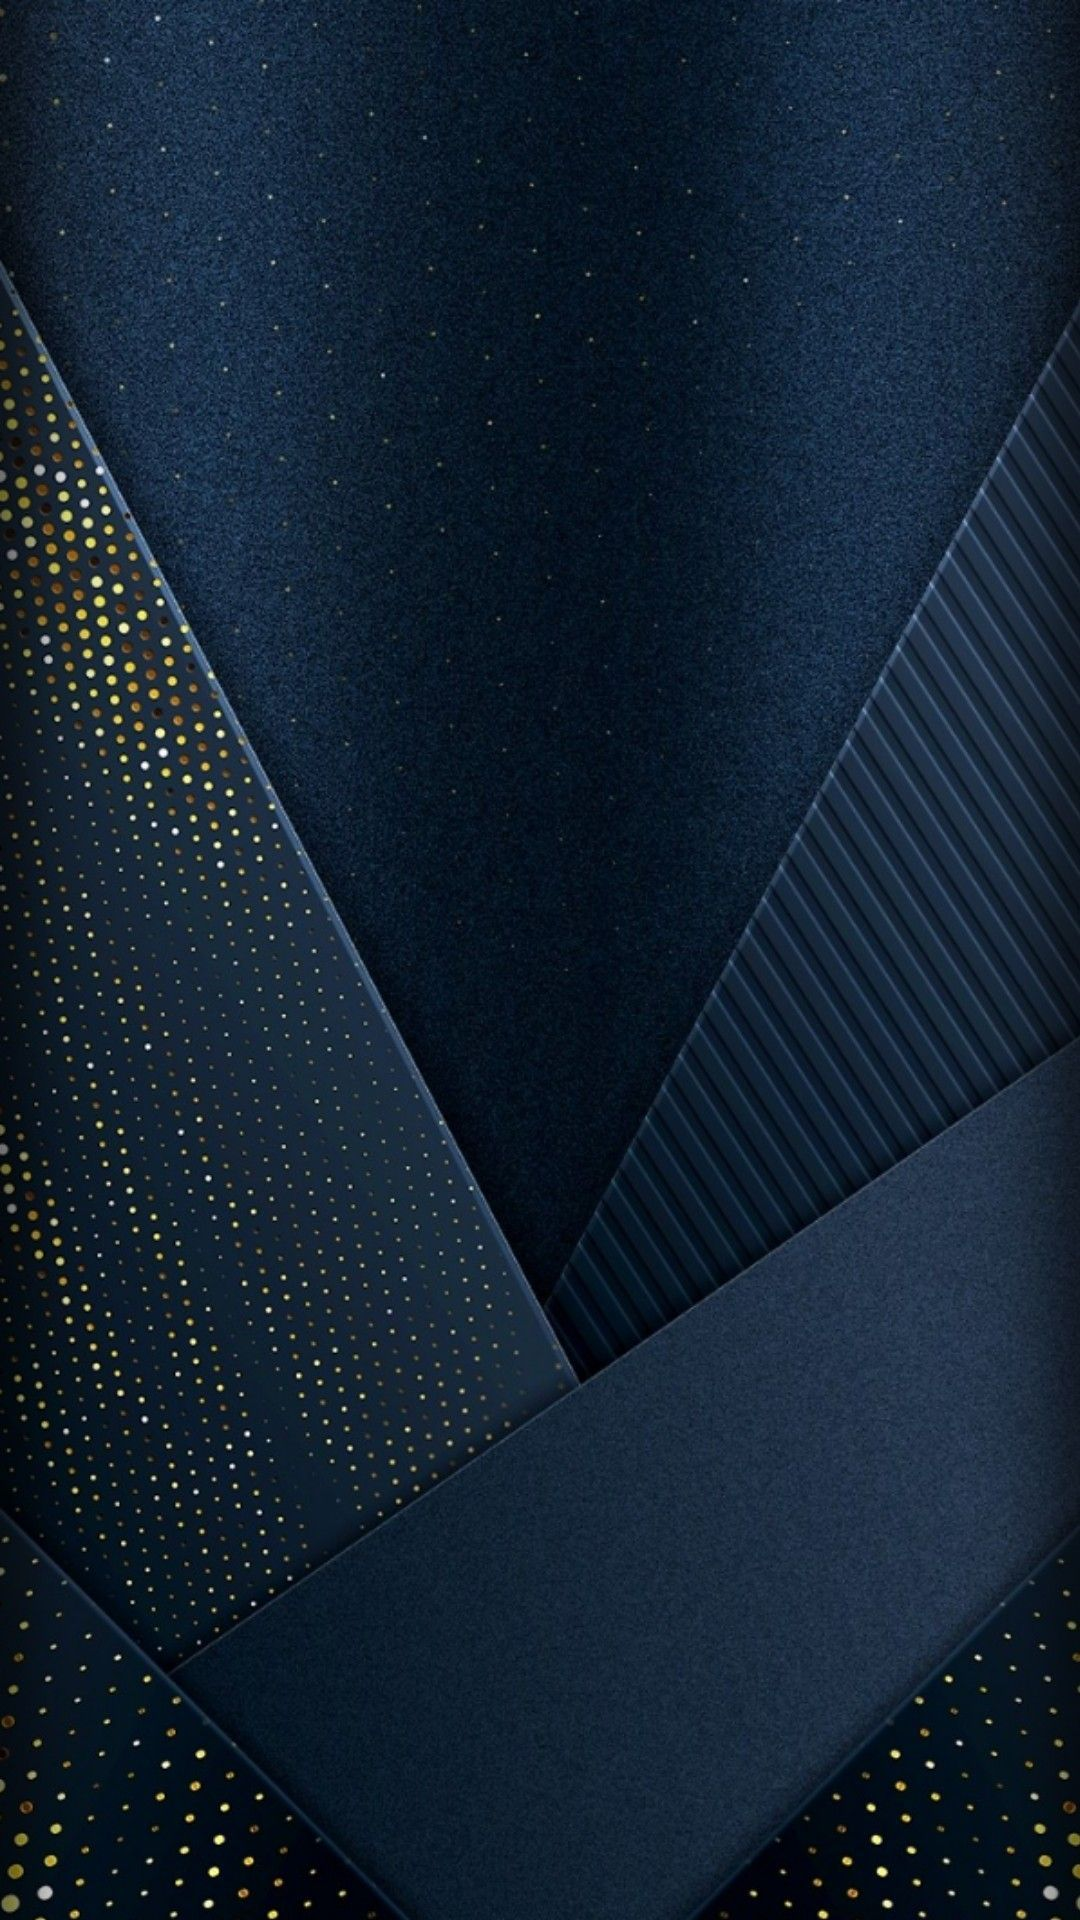 Geometric Navy And White Wallpaper Android Blue Wallpaper Phone Geometric Wallpaper Iphone Gold Wallpaper Iphone